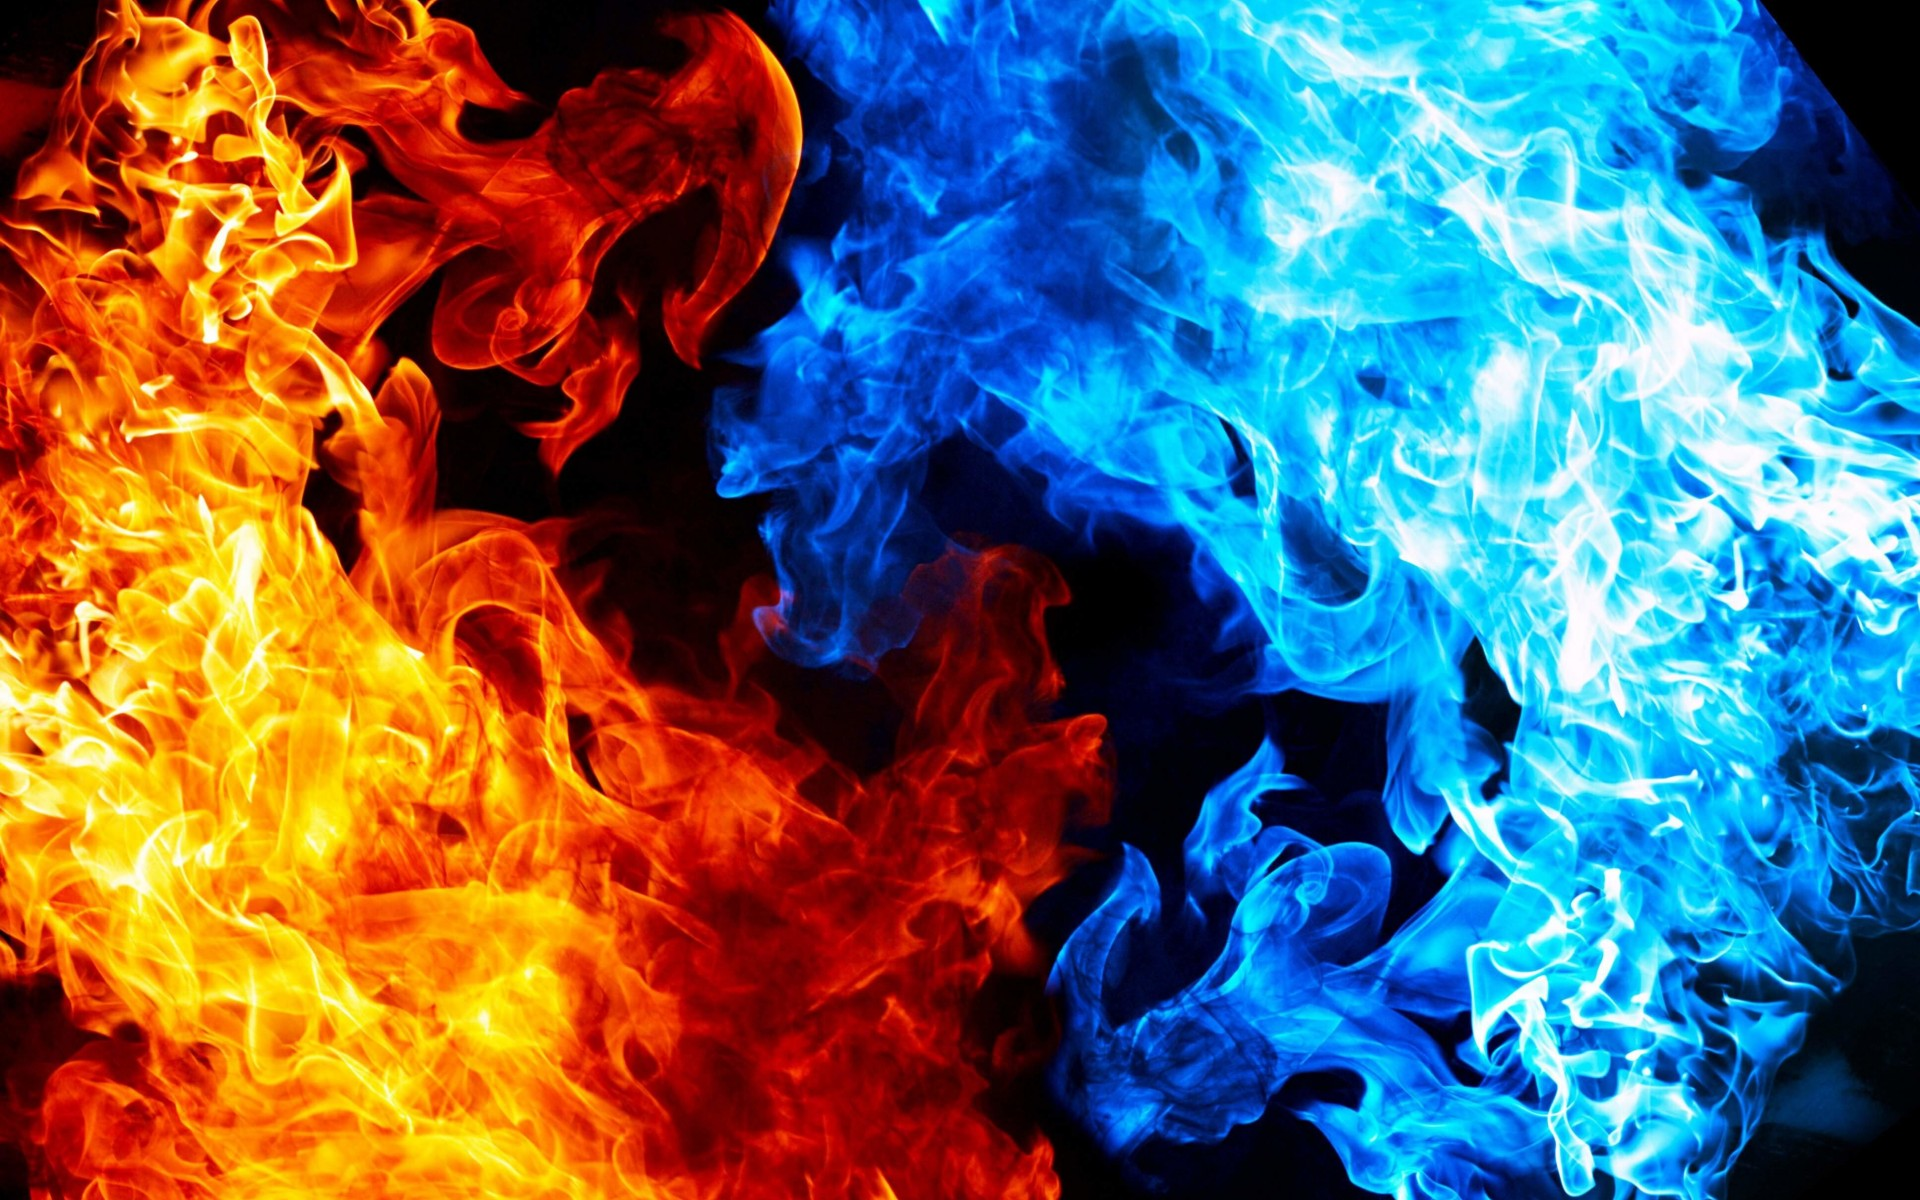 Blue And Red Fire Wallpaper for Desktop 1920x1200